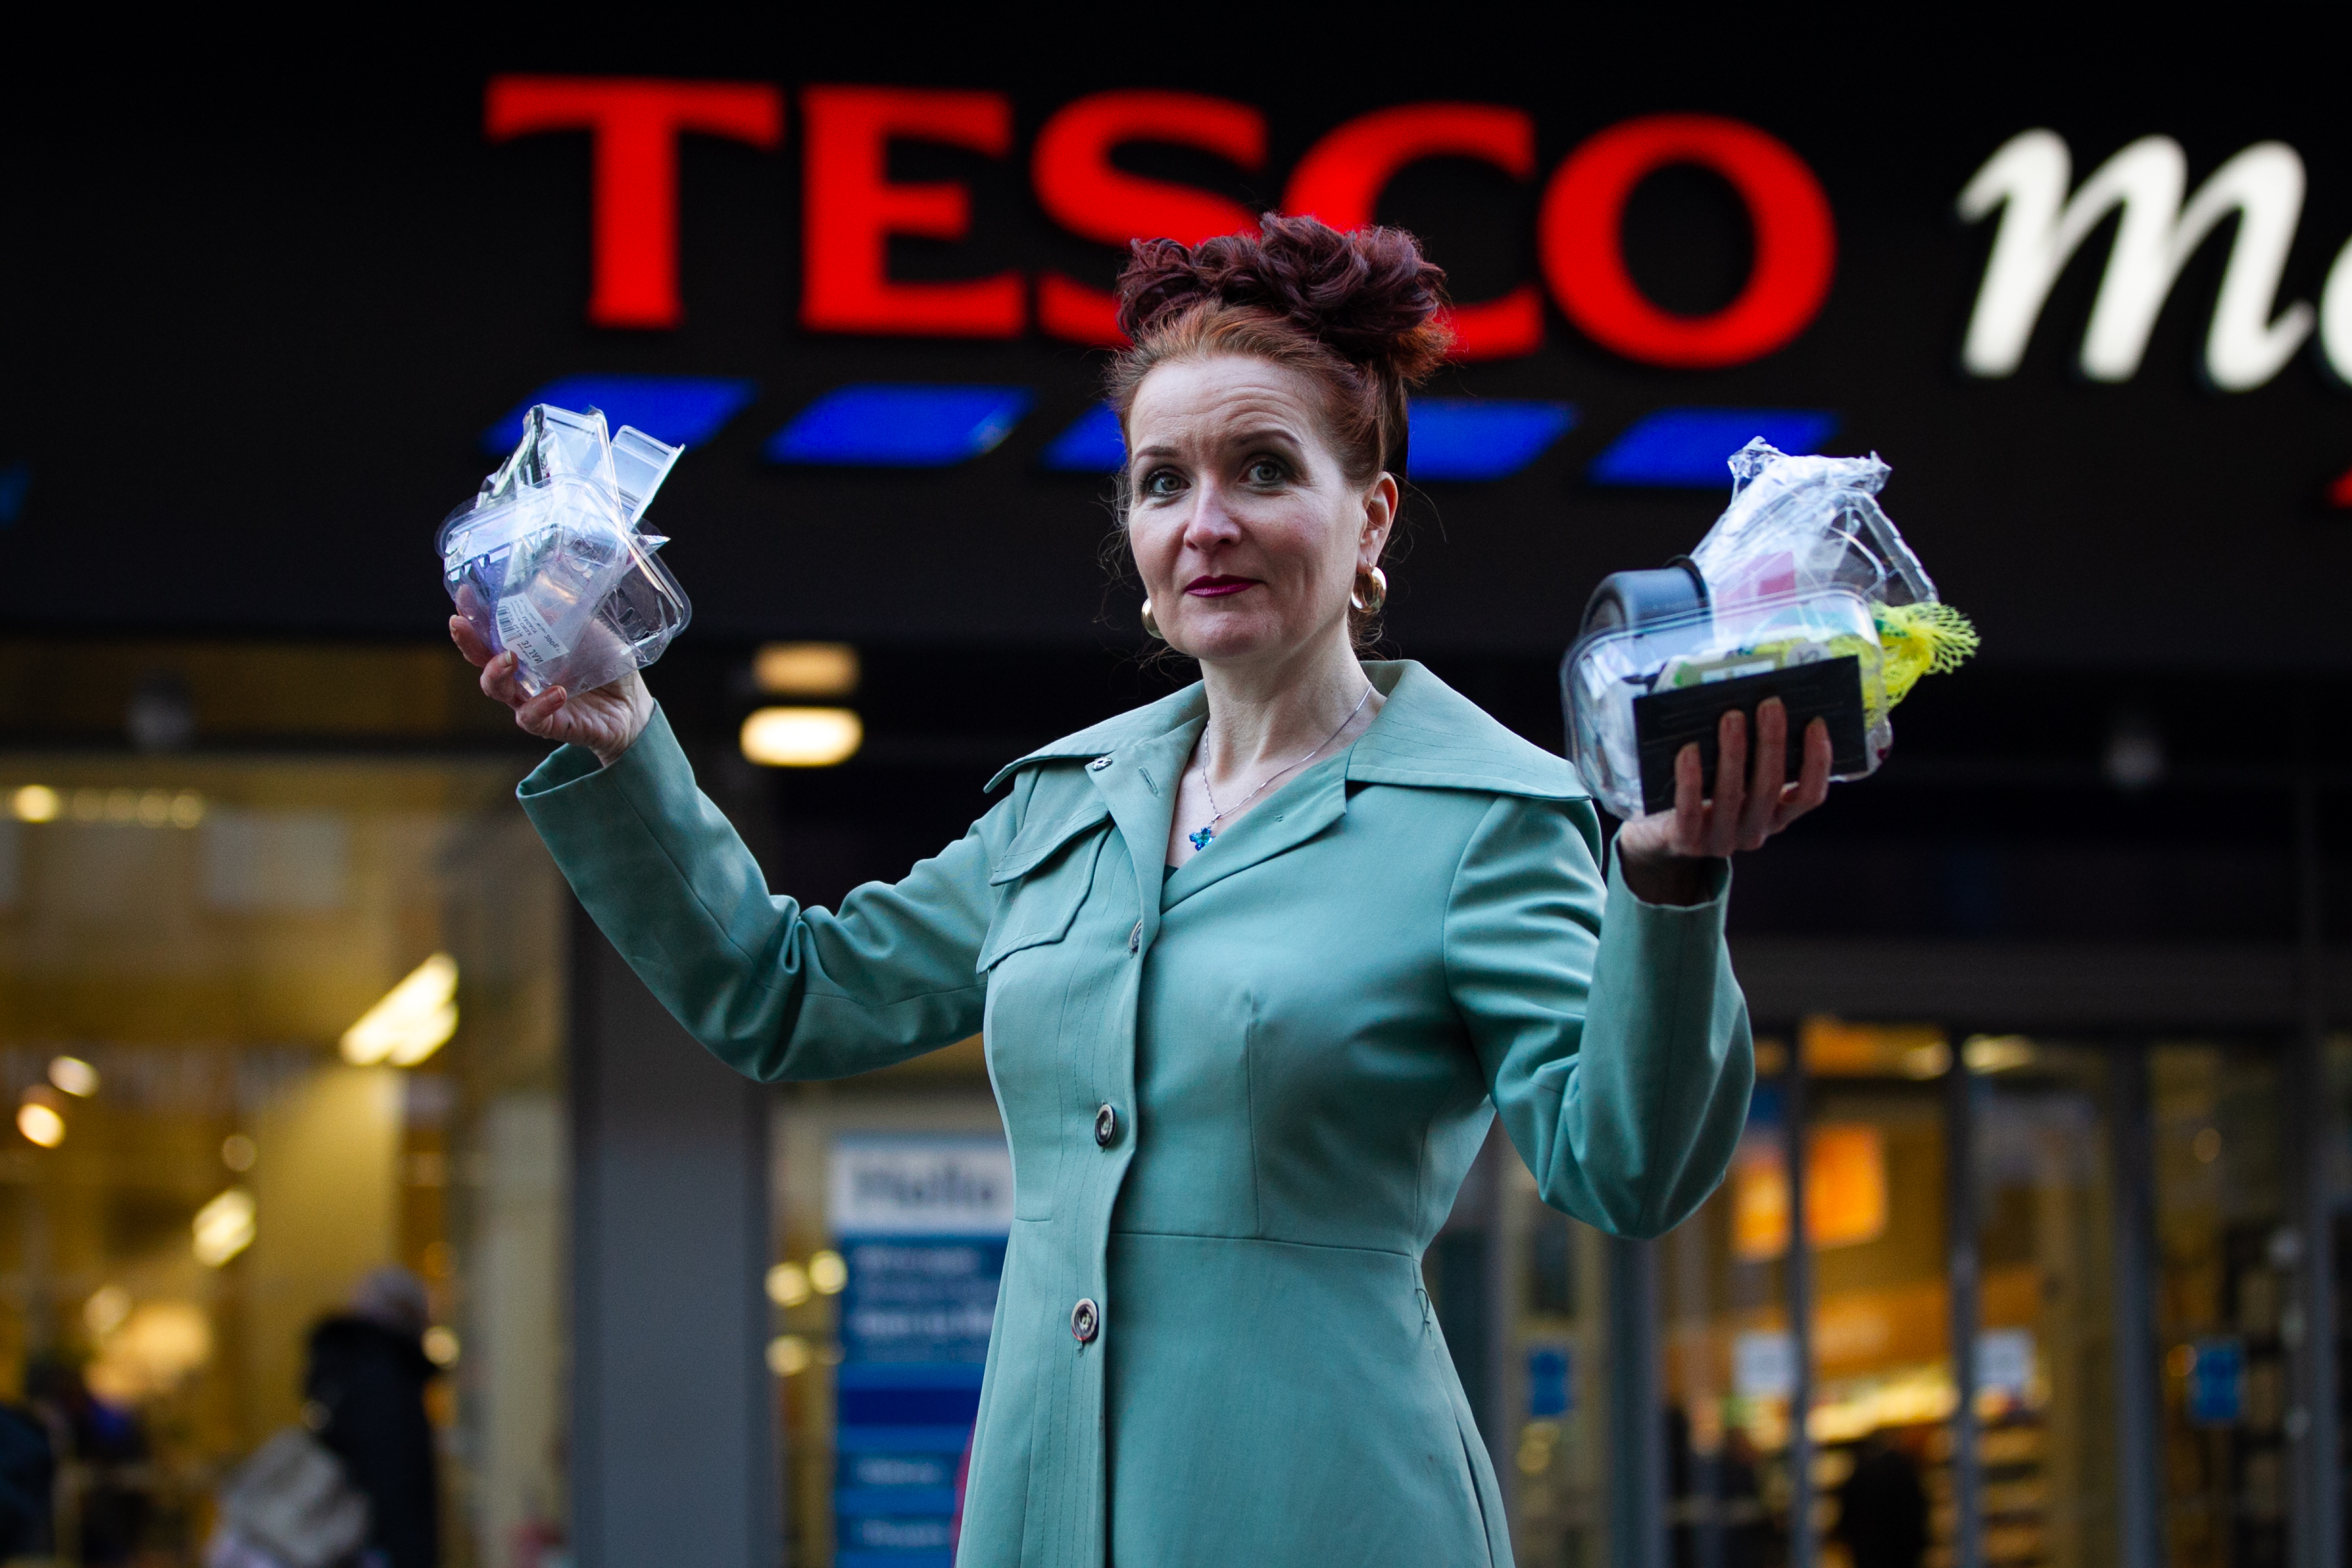 Madeline Warren, takes back plastic packaging to Tesco (and other supermarkets) after she has bought it (Andrew Cawley / DCT Media)